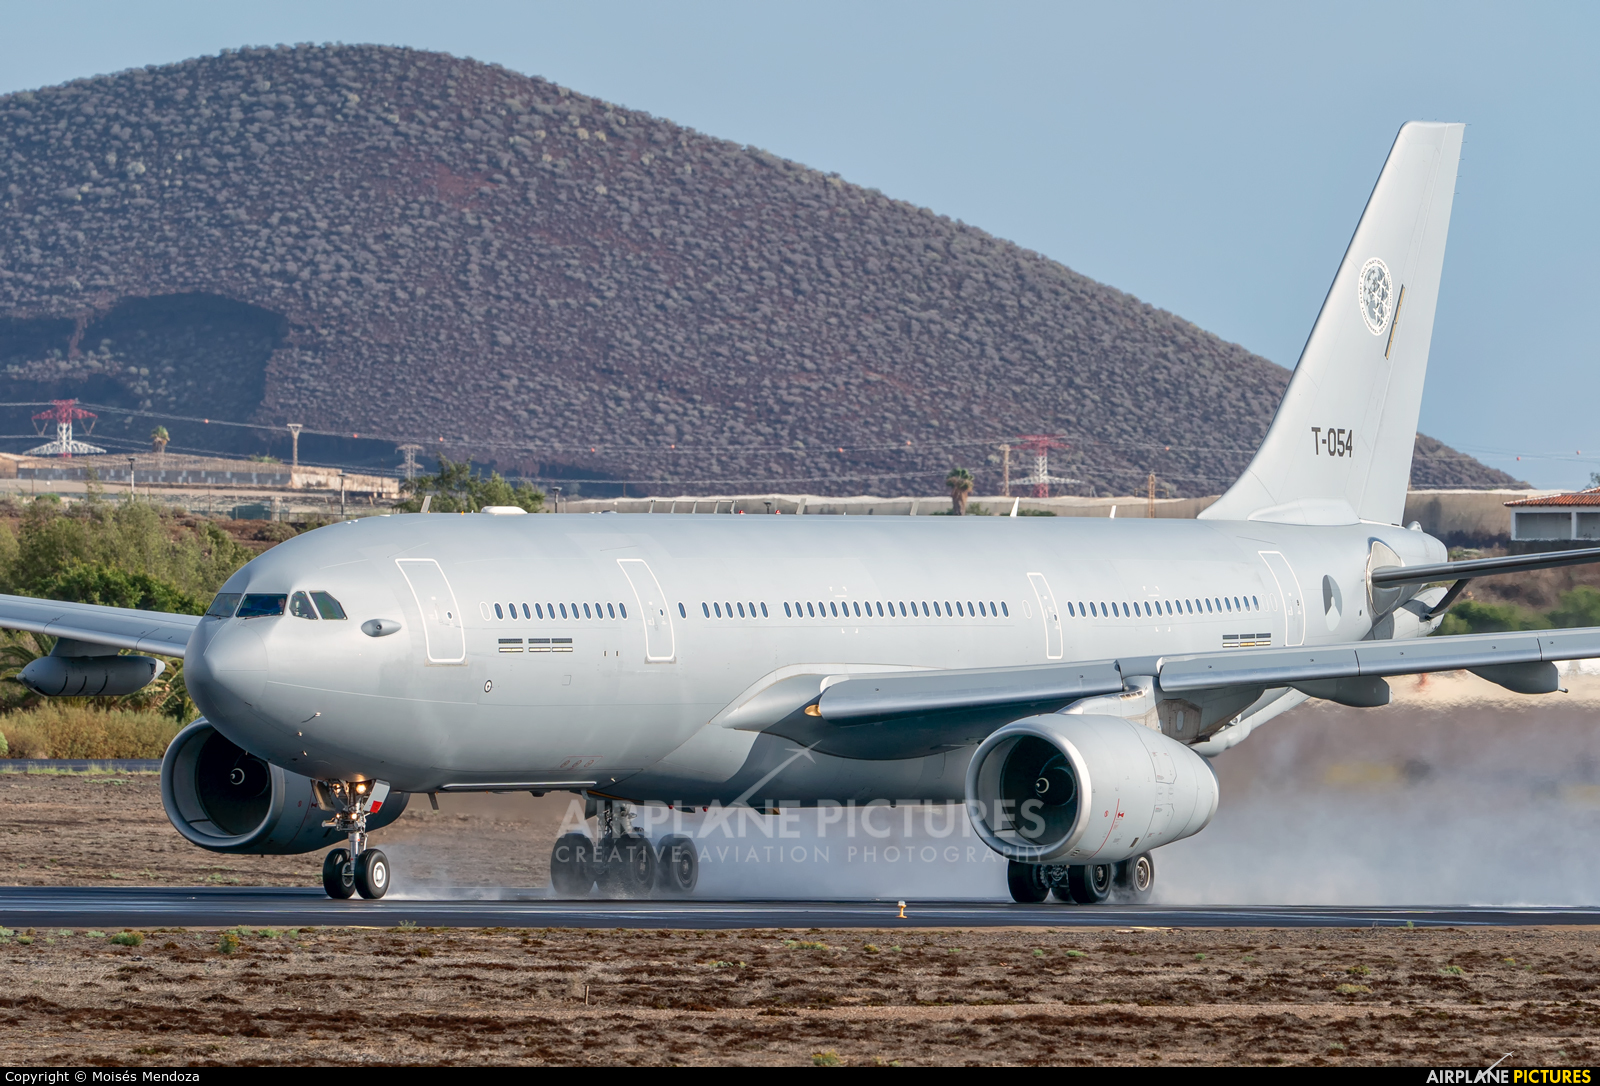 Netherlands - Air Force T-054 aircraft at Tenerife Sur - Reina Sofia